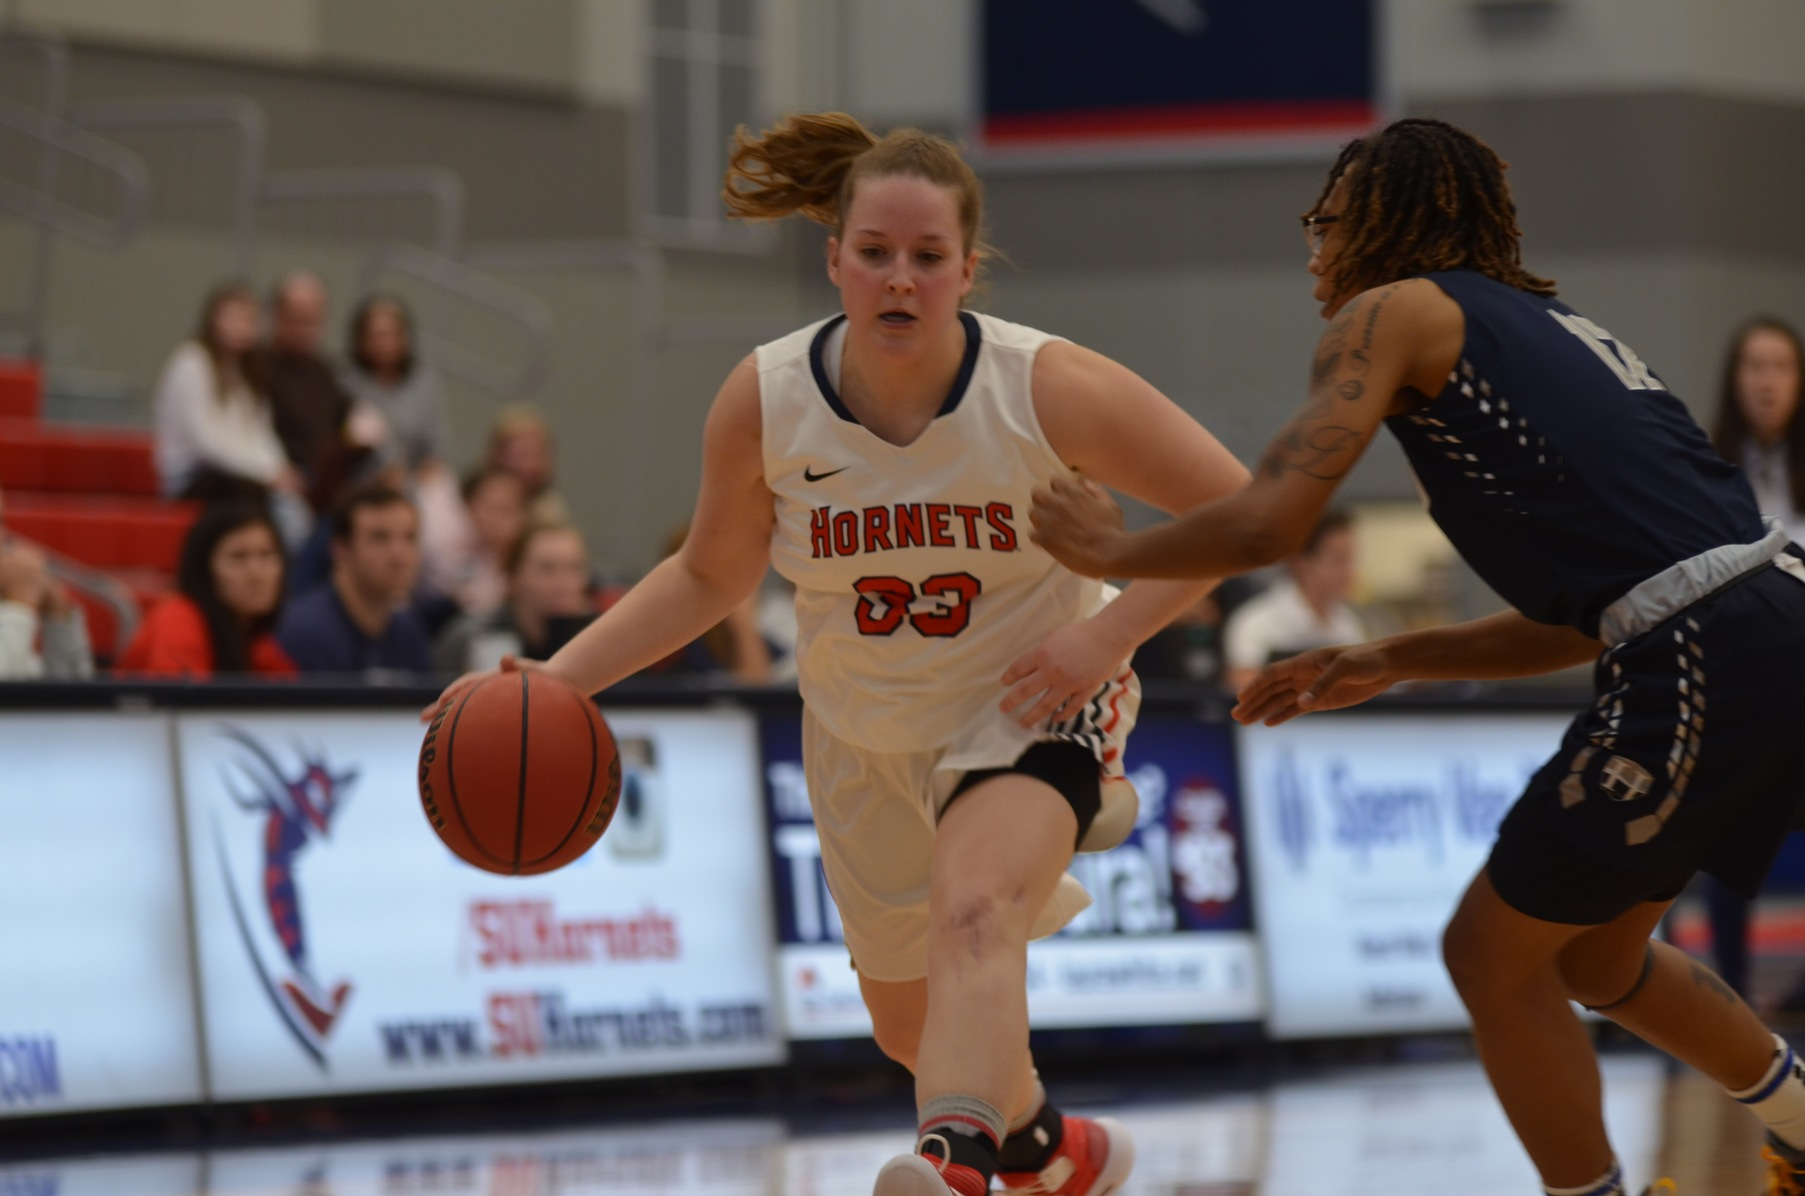 Shannon Kuhn went 4-8 from the floor and perfect from the line for 10 points in the 18-19 opener for SU.